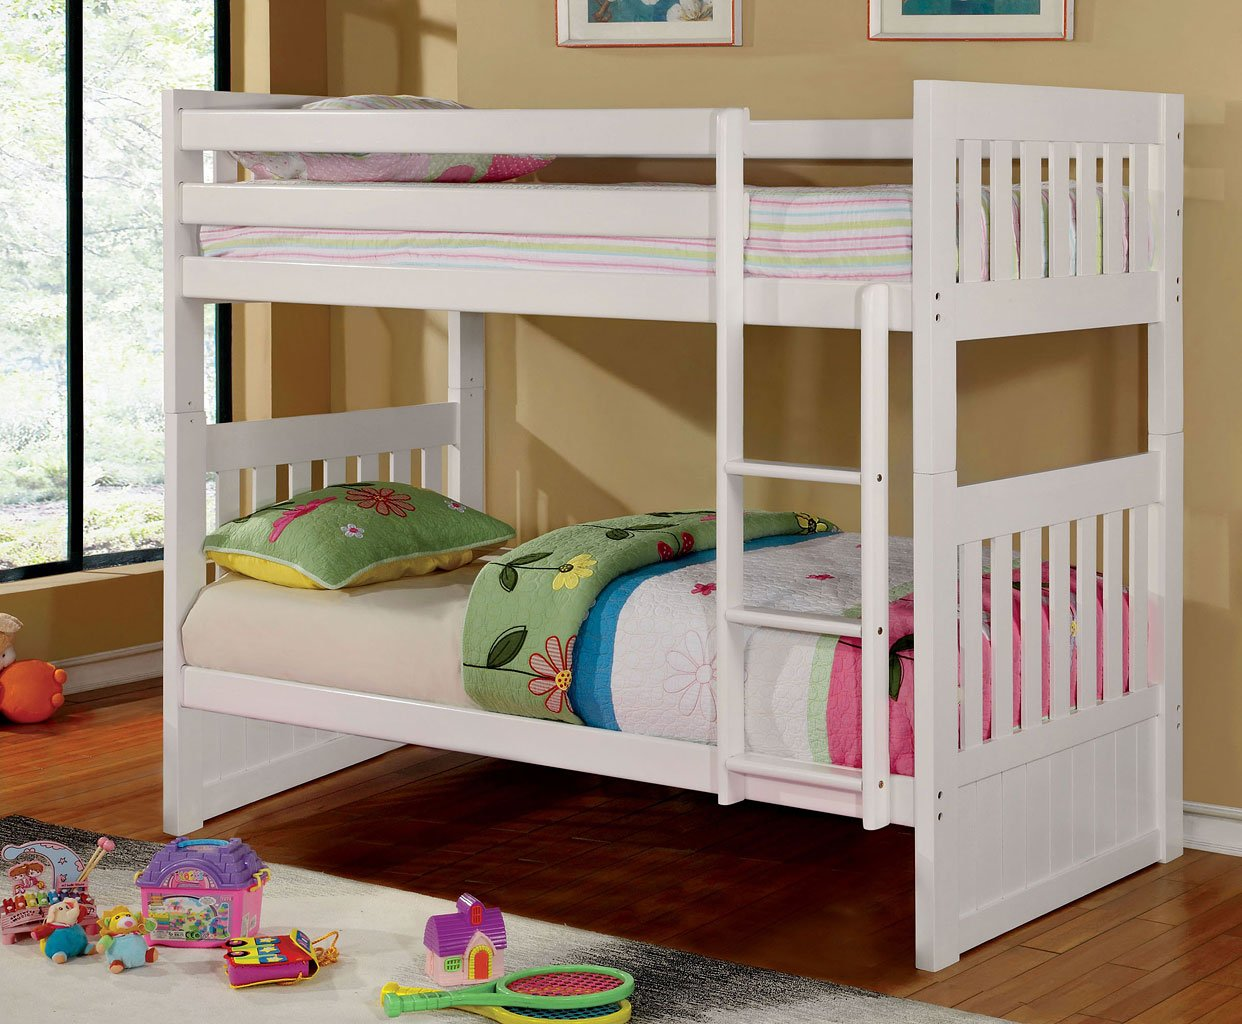 Furniture Stores Canberra Canberra Twin Twin Bunk Bed White